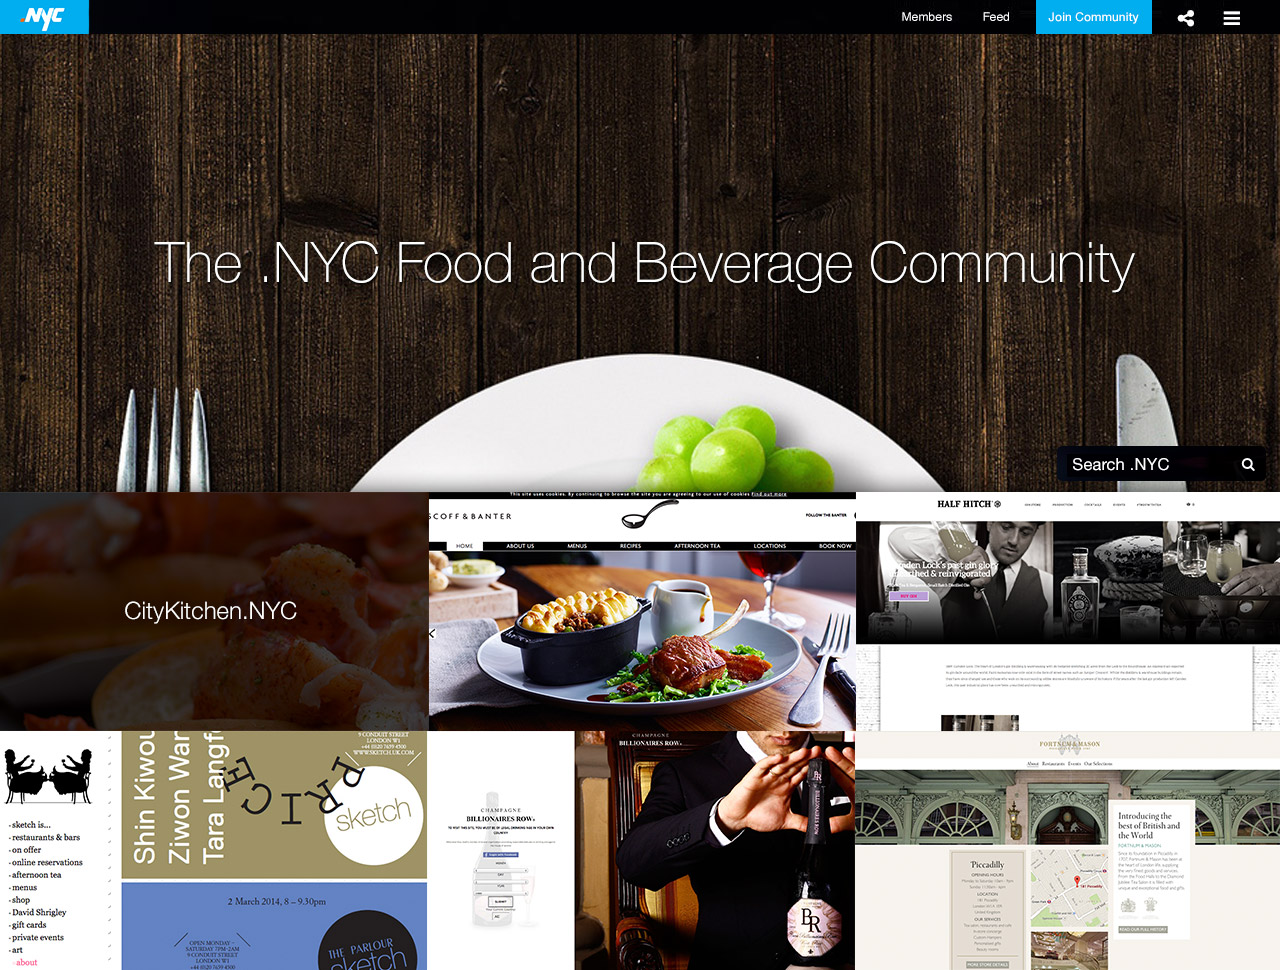 NYC Food and Beverage Community